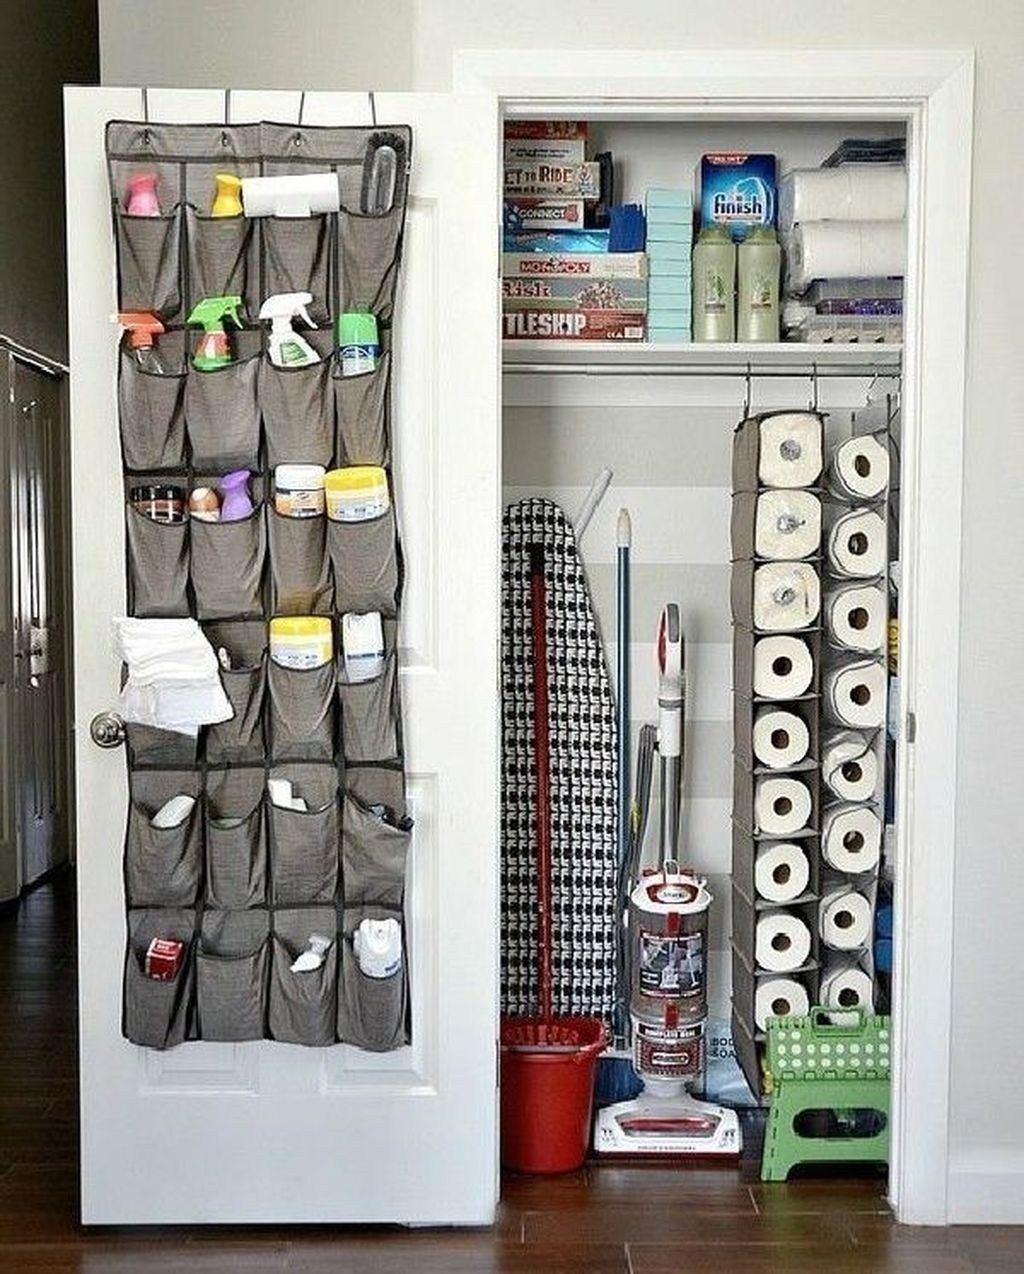 45 Enchanting Apartment Decor And Organization Ideas ...